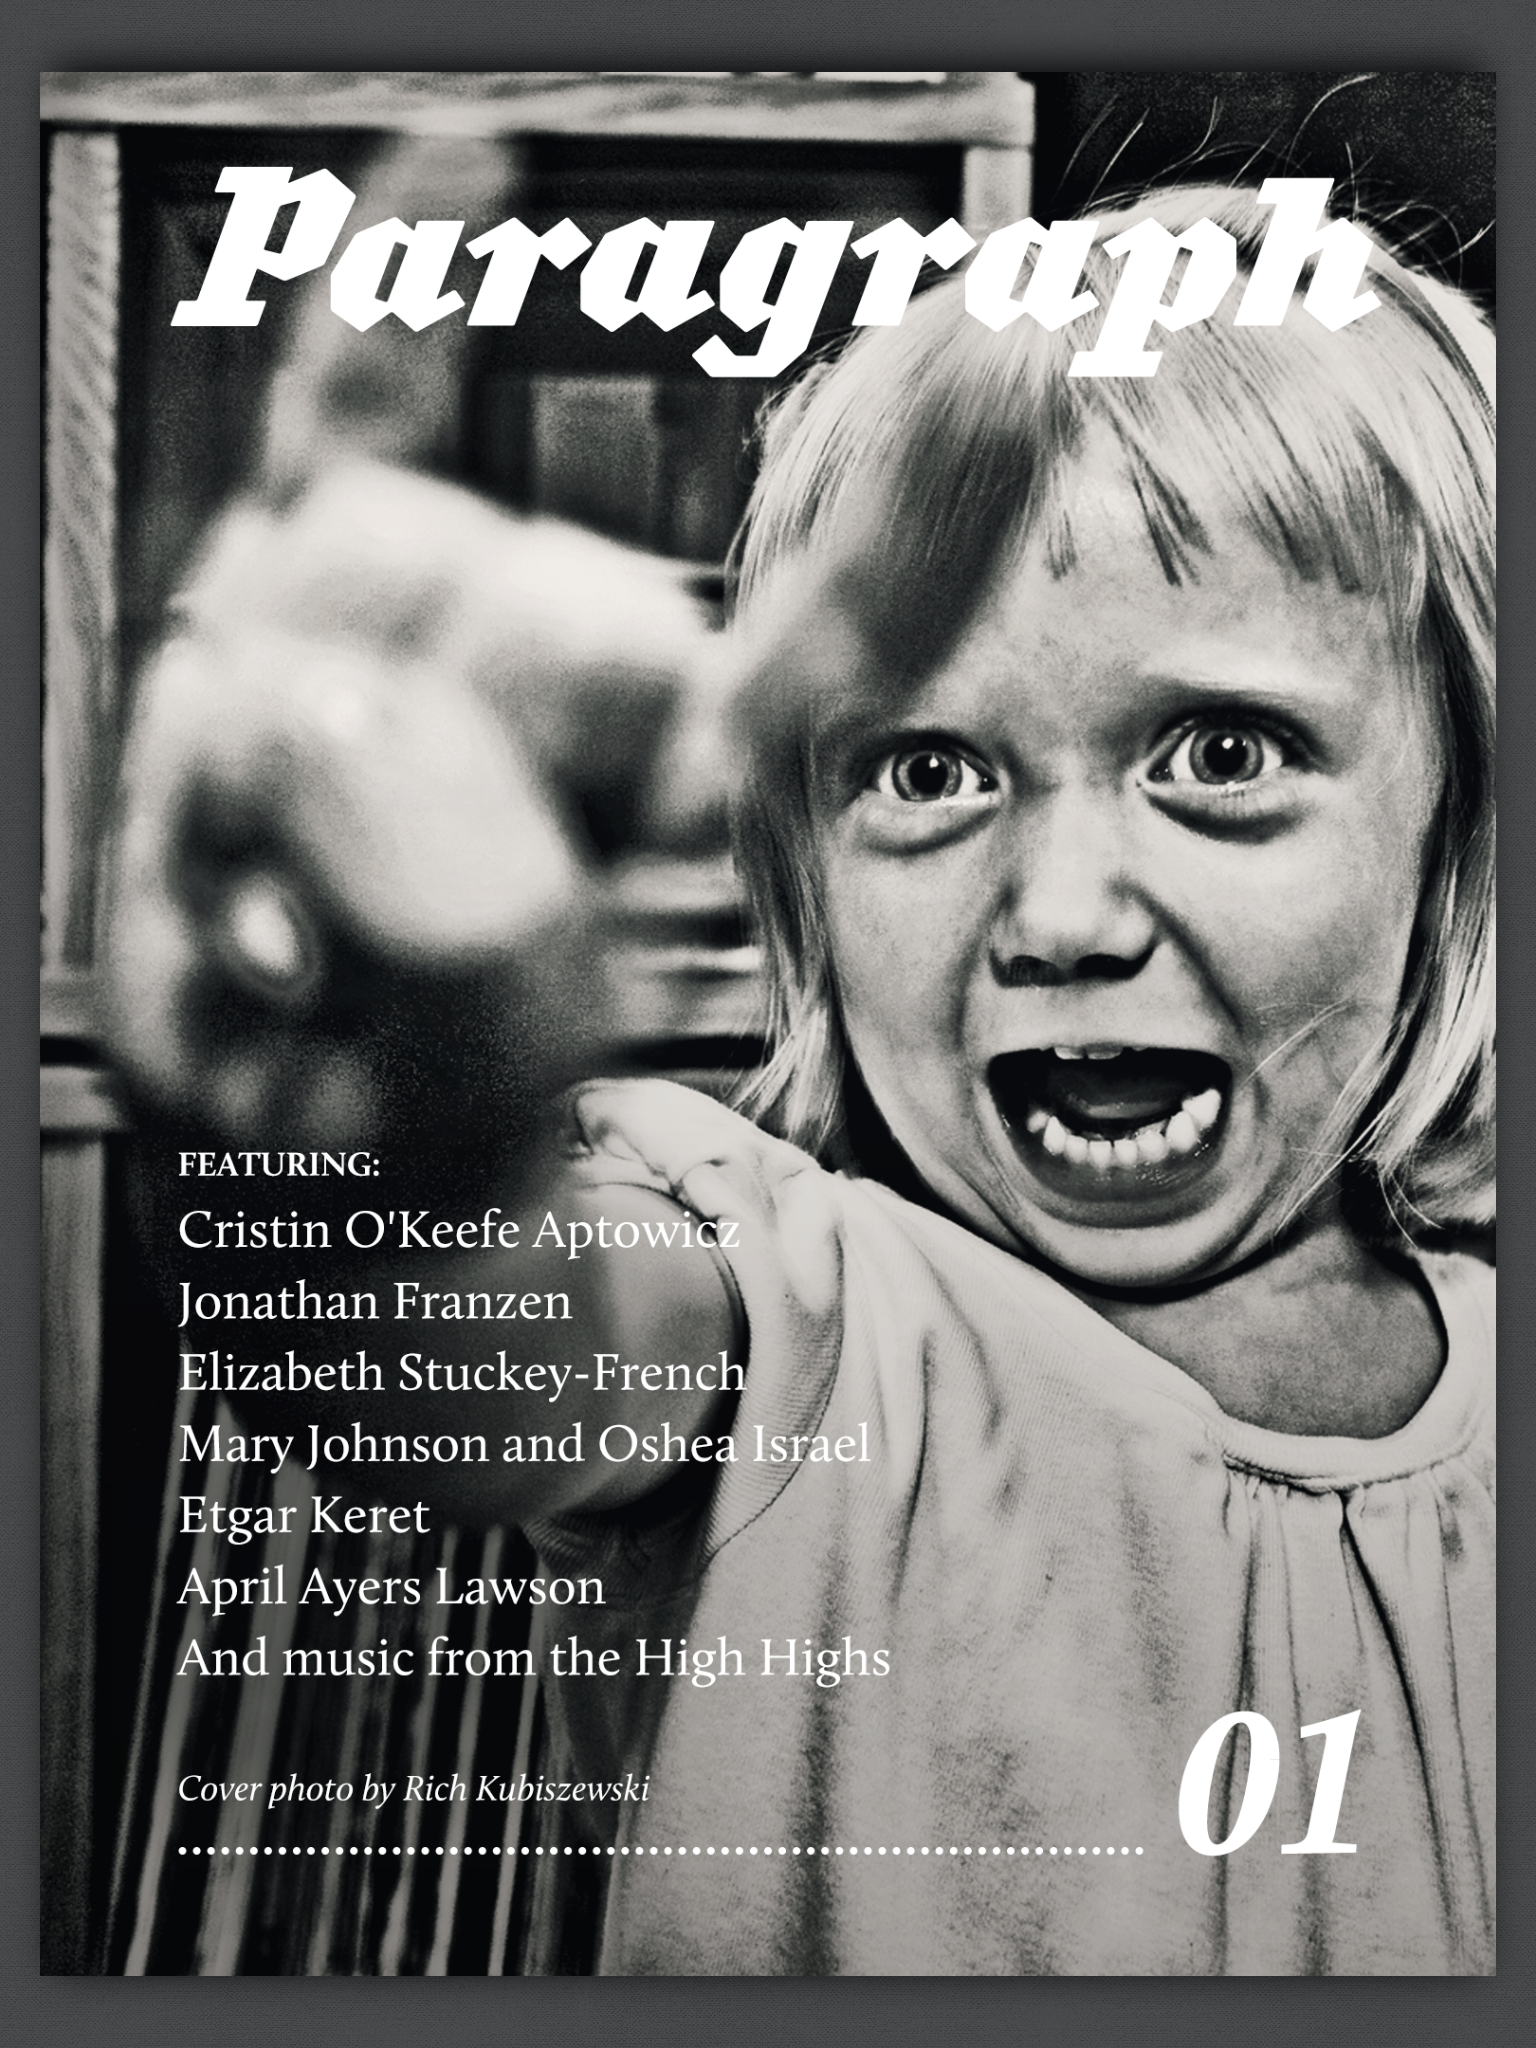 Issue one of Paragraph Shorts